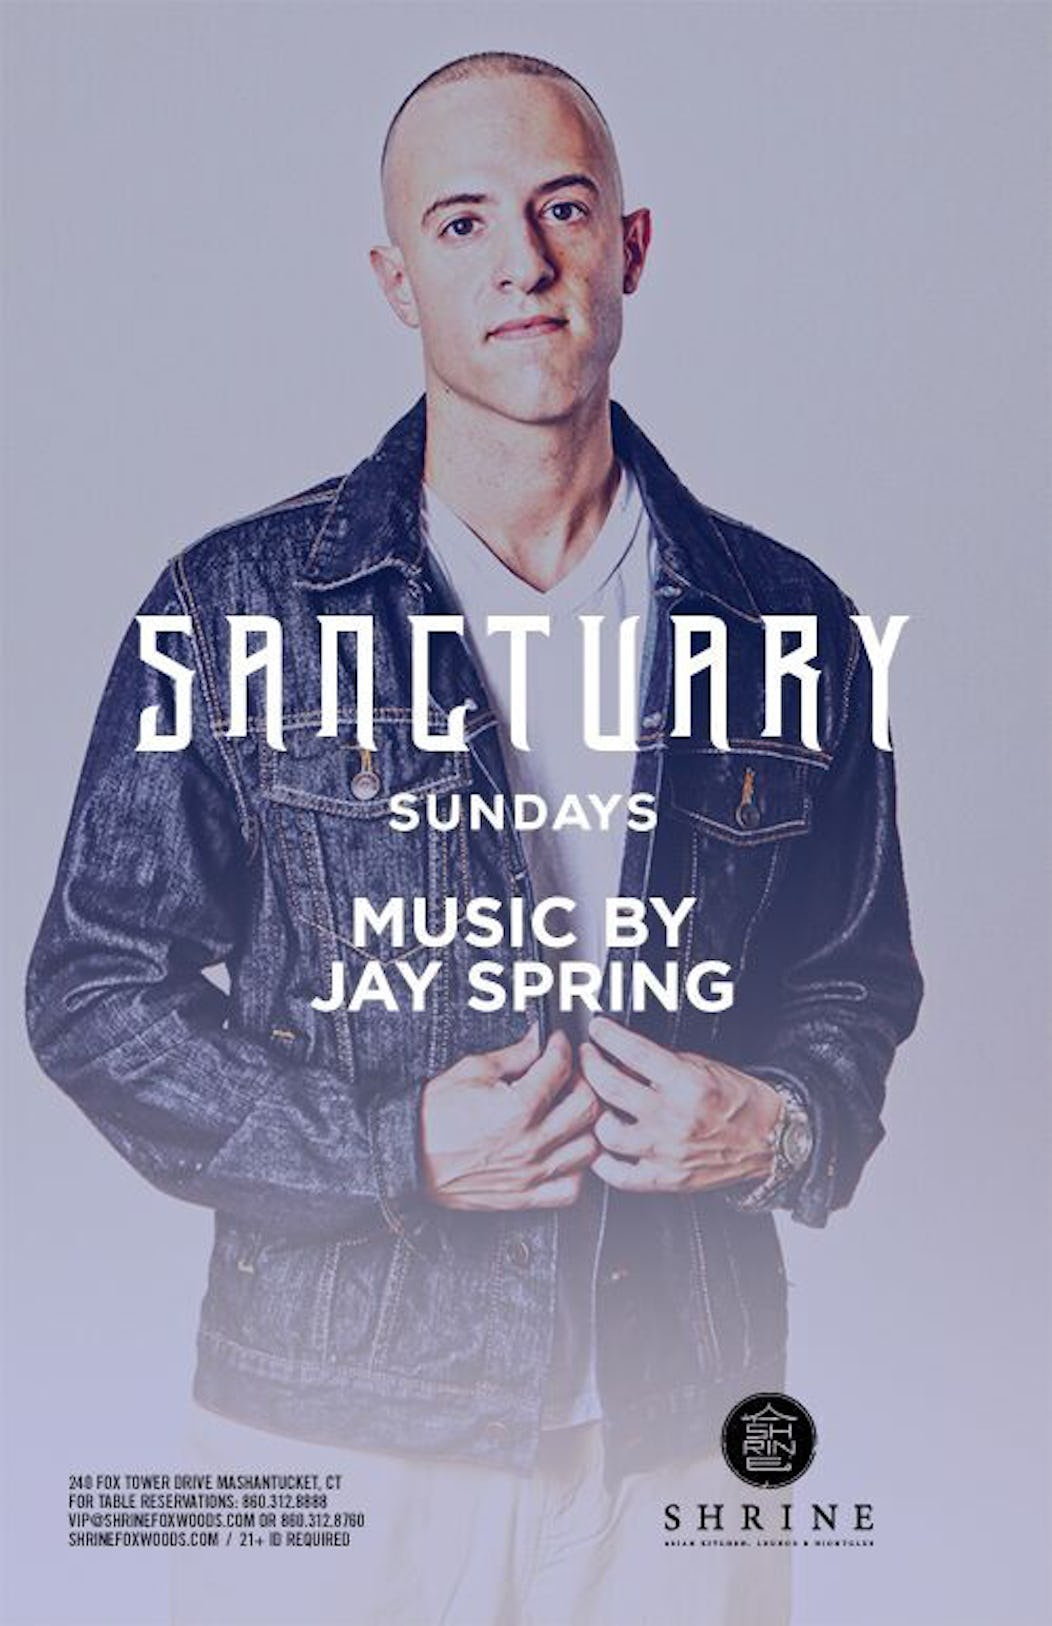 dbfb19c1dba25 Buy Tickets and Tables to Sanctuary Sundays feat. Jay Spring at Shrine